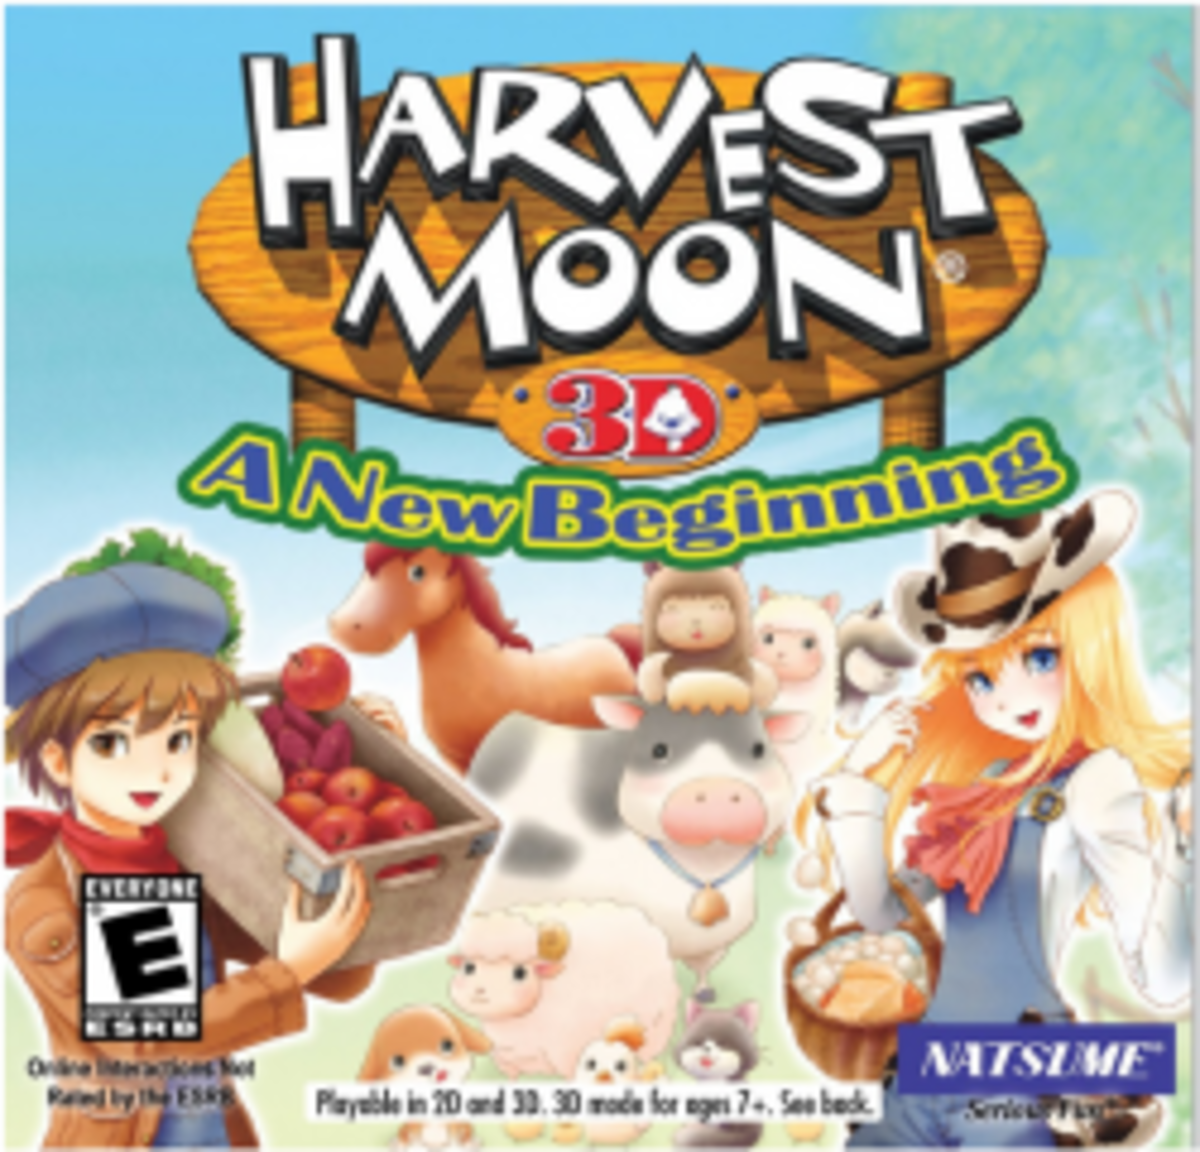 8 Games Like Harvest Moon - Other Simulation & Farming Games